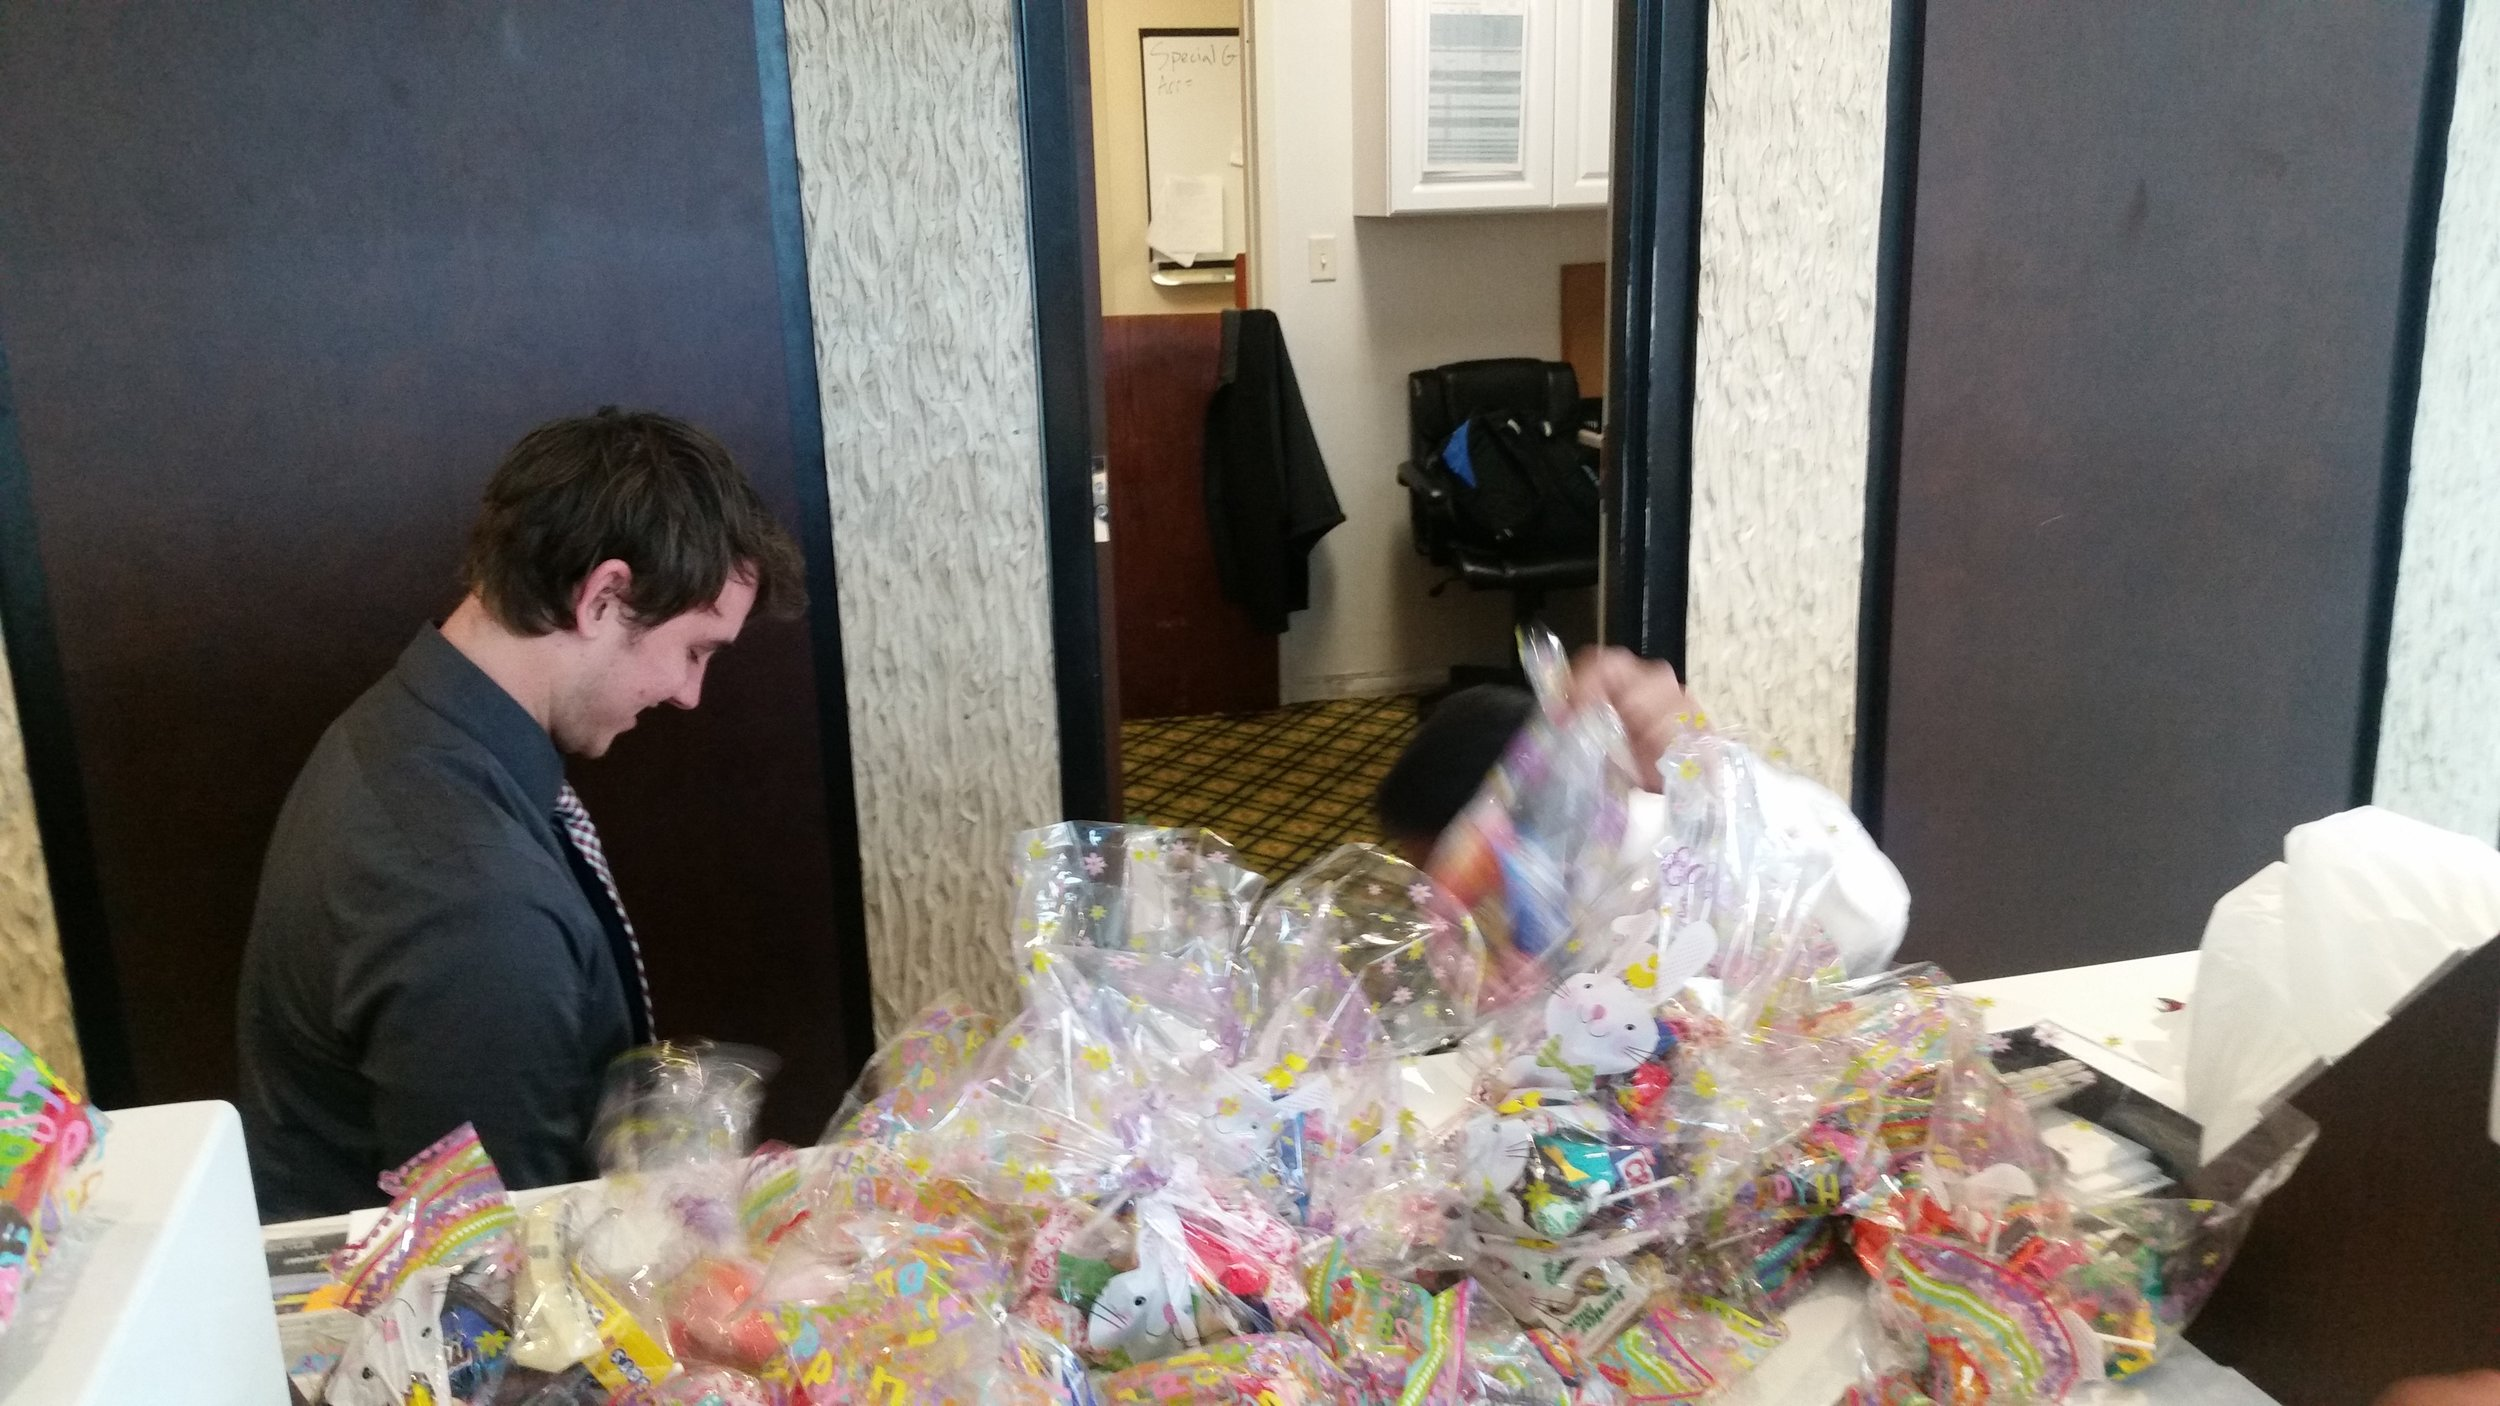 Front desk associate Nicholas getting all the candy bags ready to take to primary children's hospital .